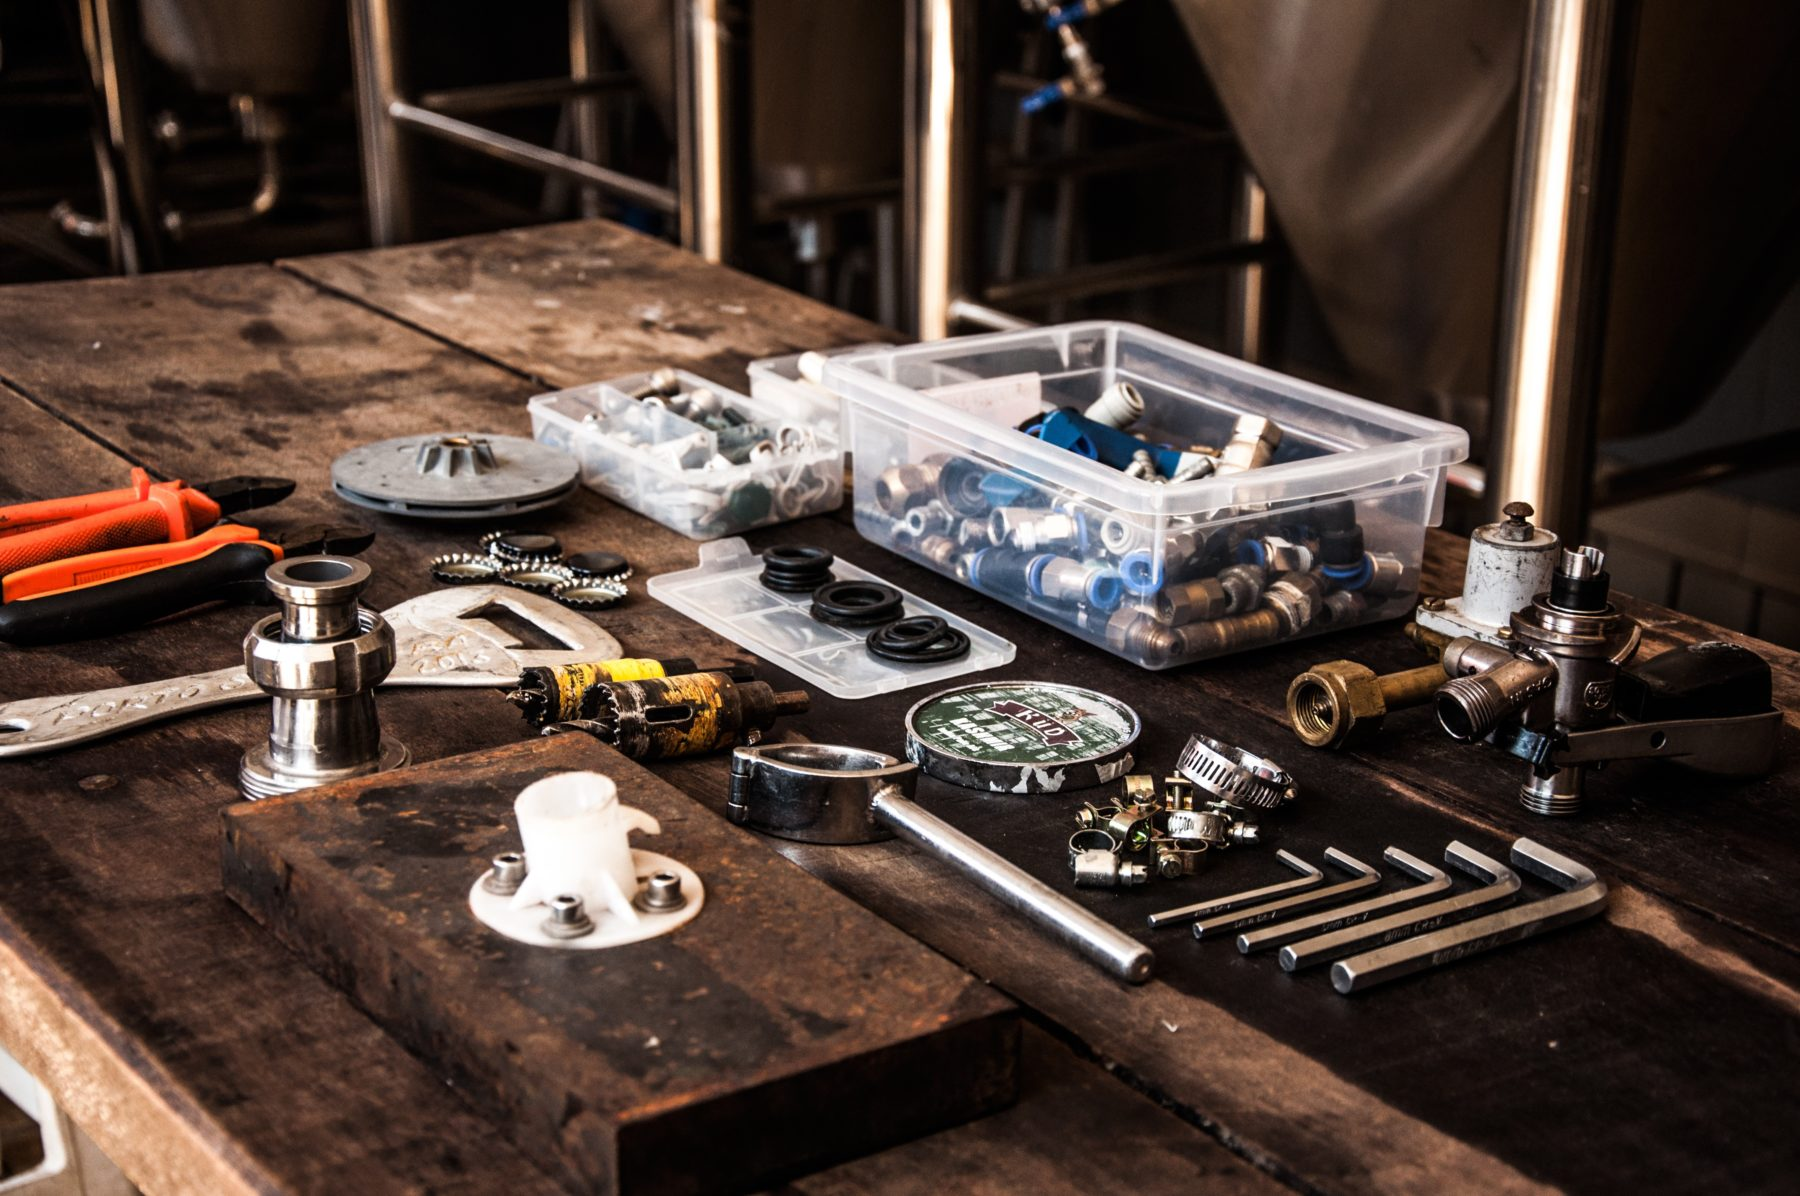 Range of tools organized on a table.